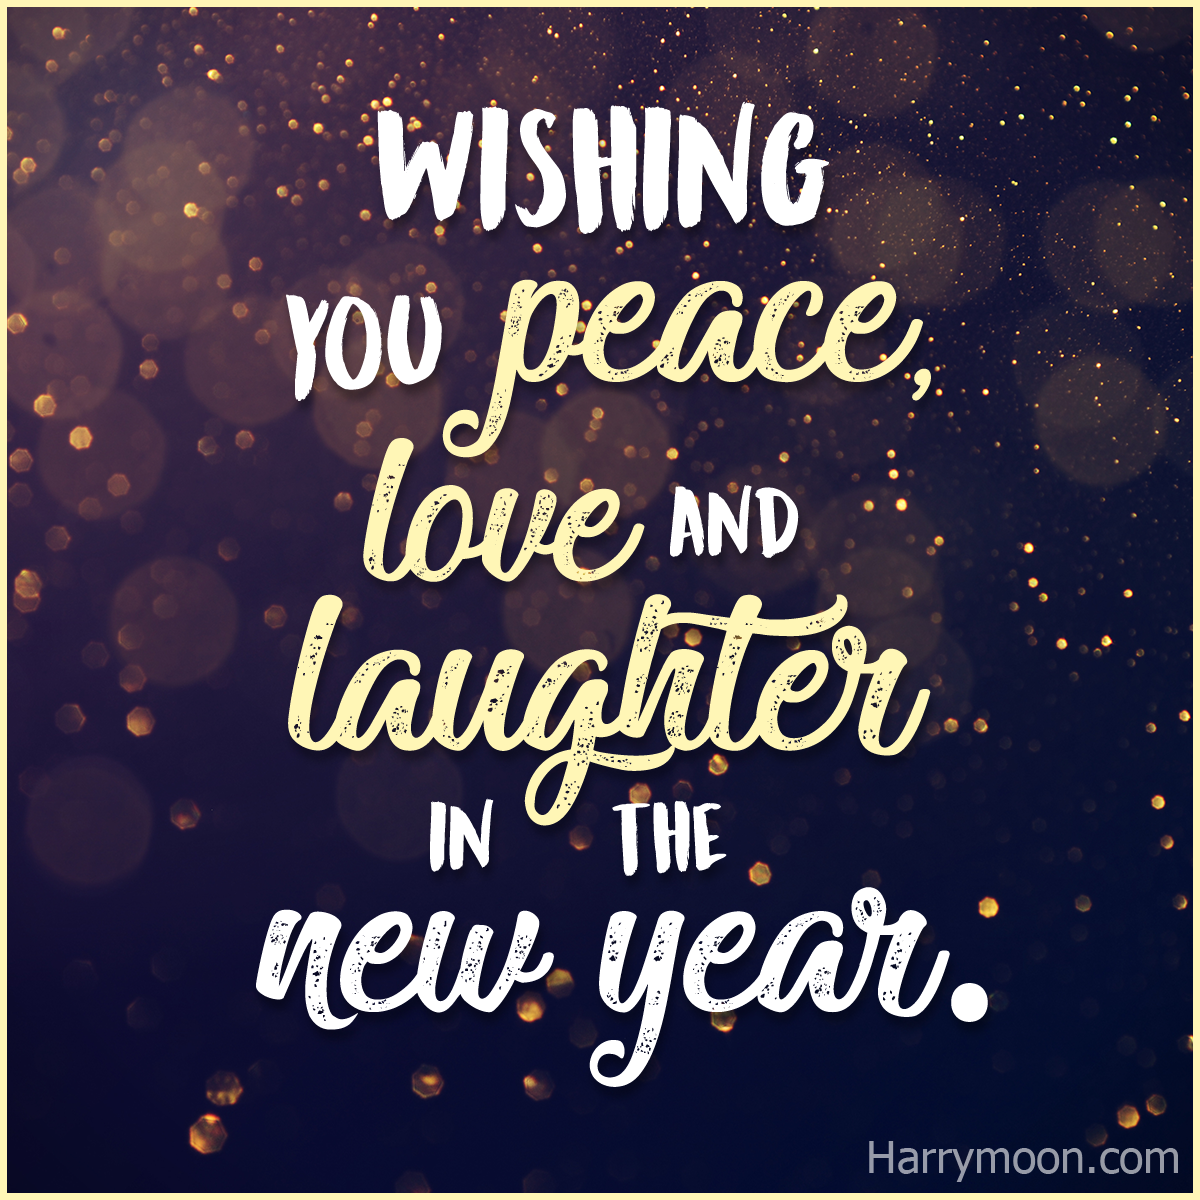 Wishing You Peace Love And Laughter In The New Year Newyearquotes Newyear Quote Newye Quotes About New Year New Year Wishes Quotes Happy New Year Quotes